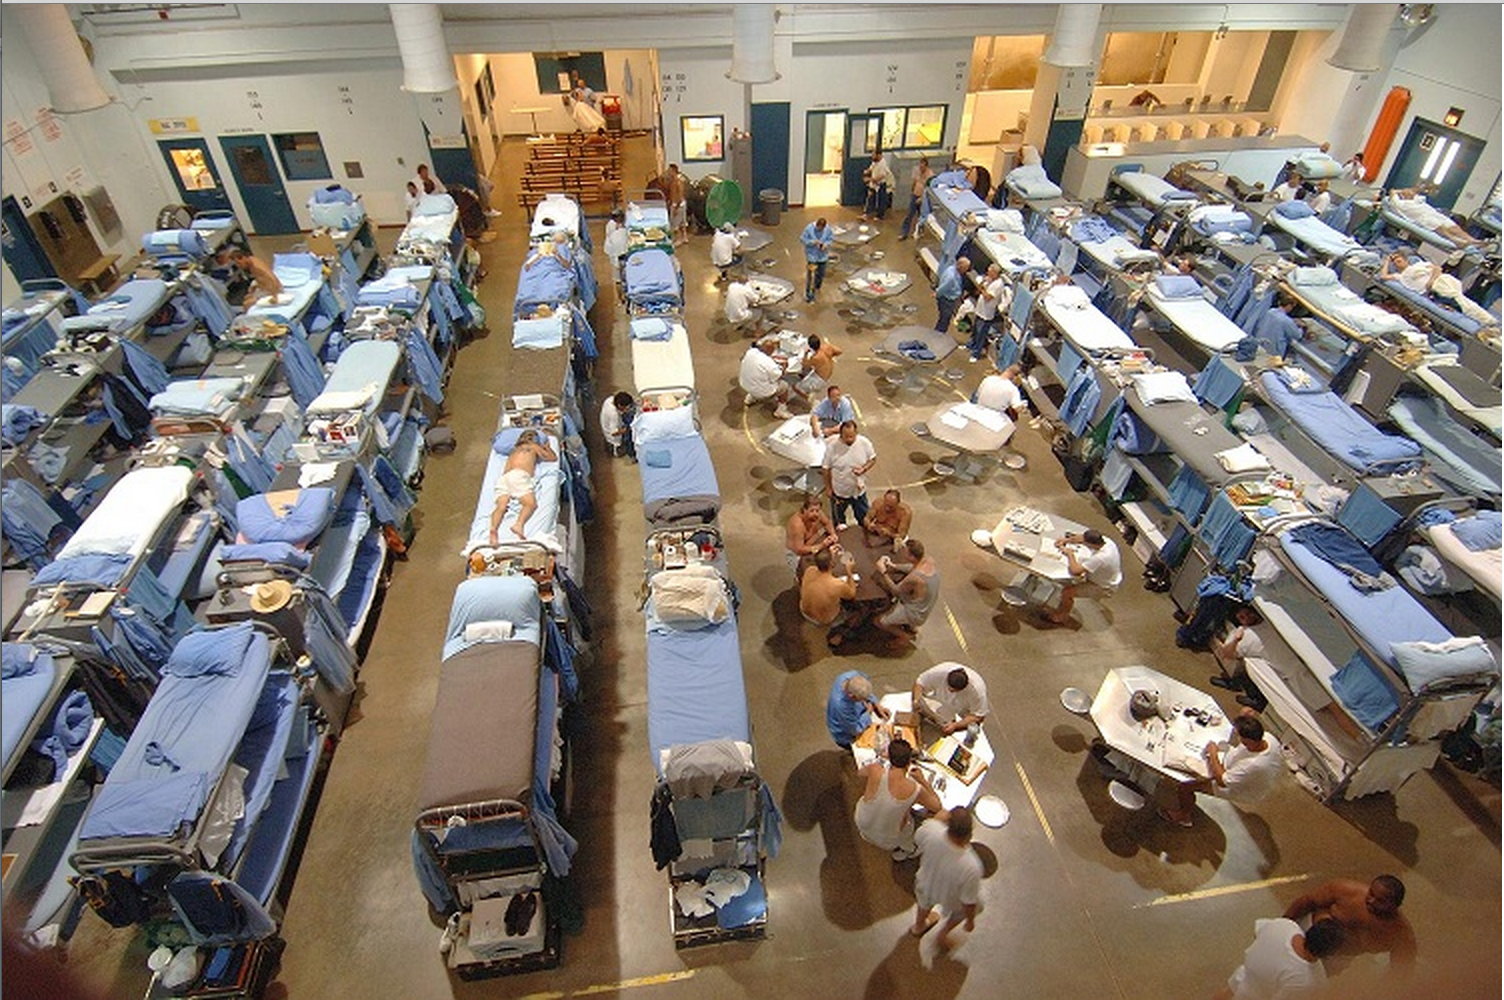 Overcrowded Prison Source: http://en.wikipedia.org/wiki/Prison, Creative Commons Attribution